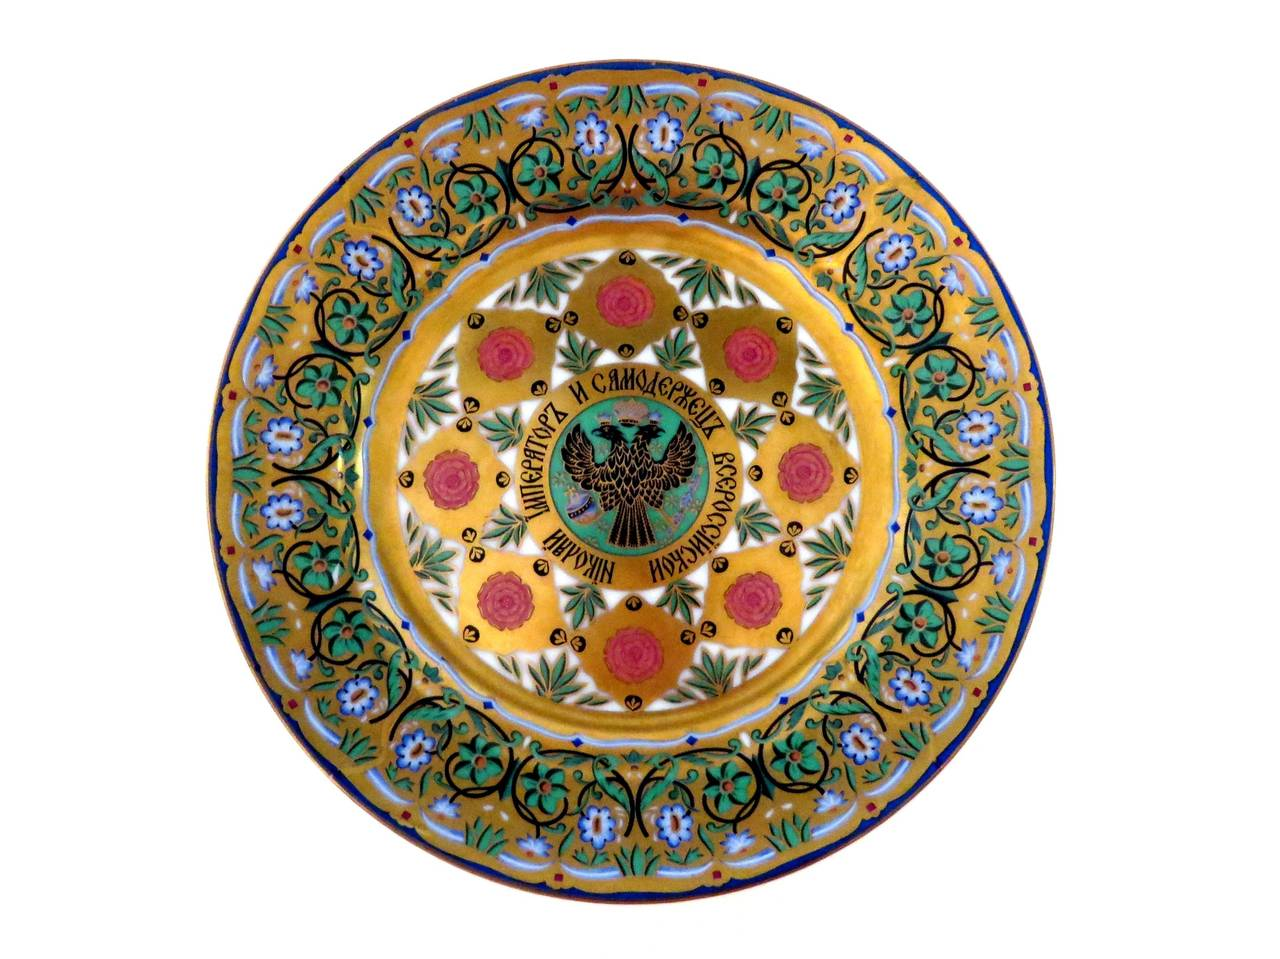 Romantic Two Russian Imperial Kremlin Style Luncheon Porcelain Plates For Sale  sc 1 st  1stDibs & Two Russian Imperial Kremlin Style Luncheon Porcelain Plates For ...